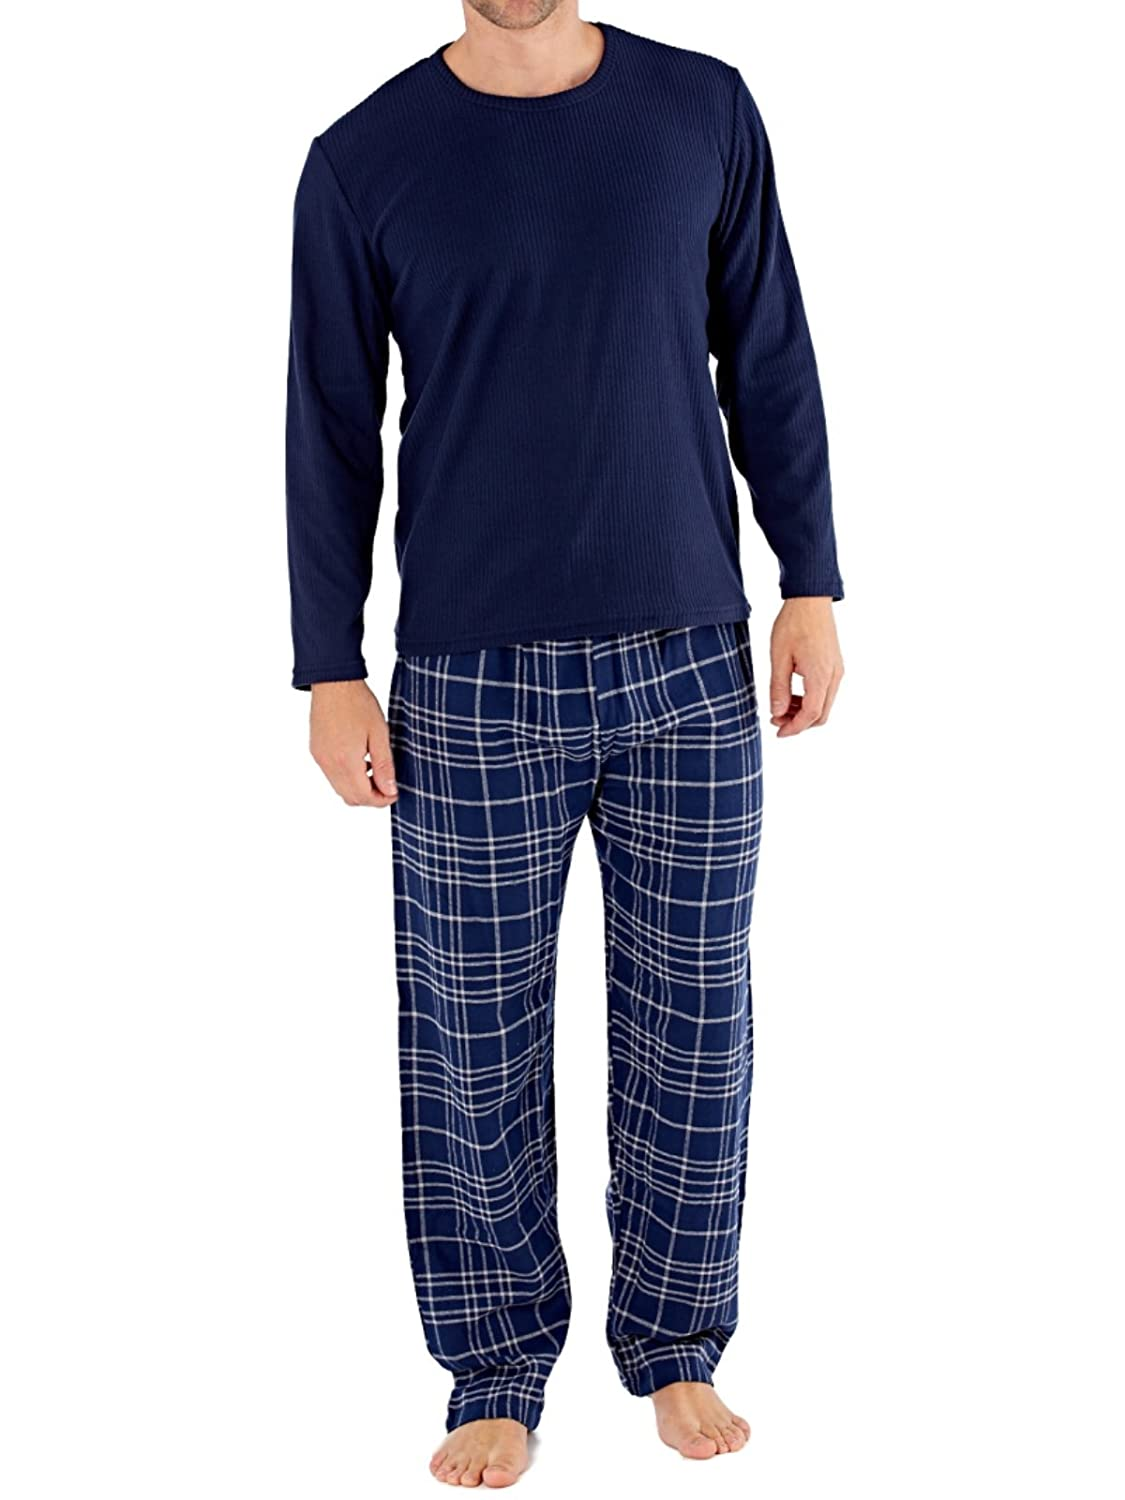 Harvey James - Sets de pijama Hombre - Azul - L